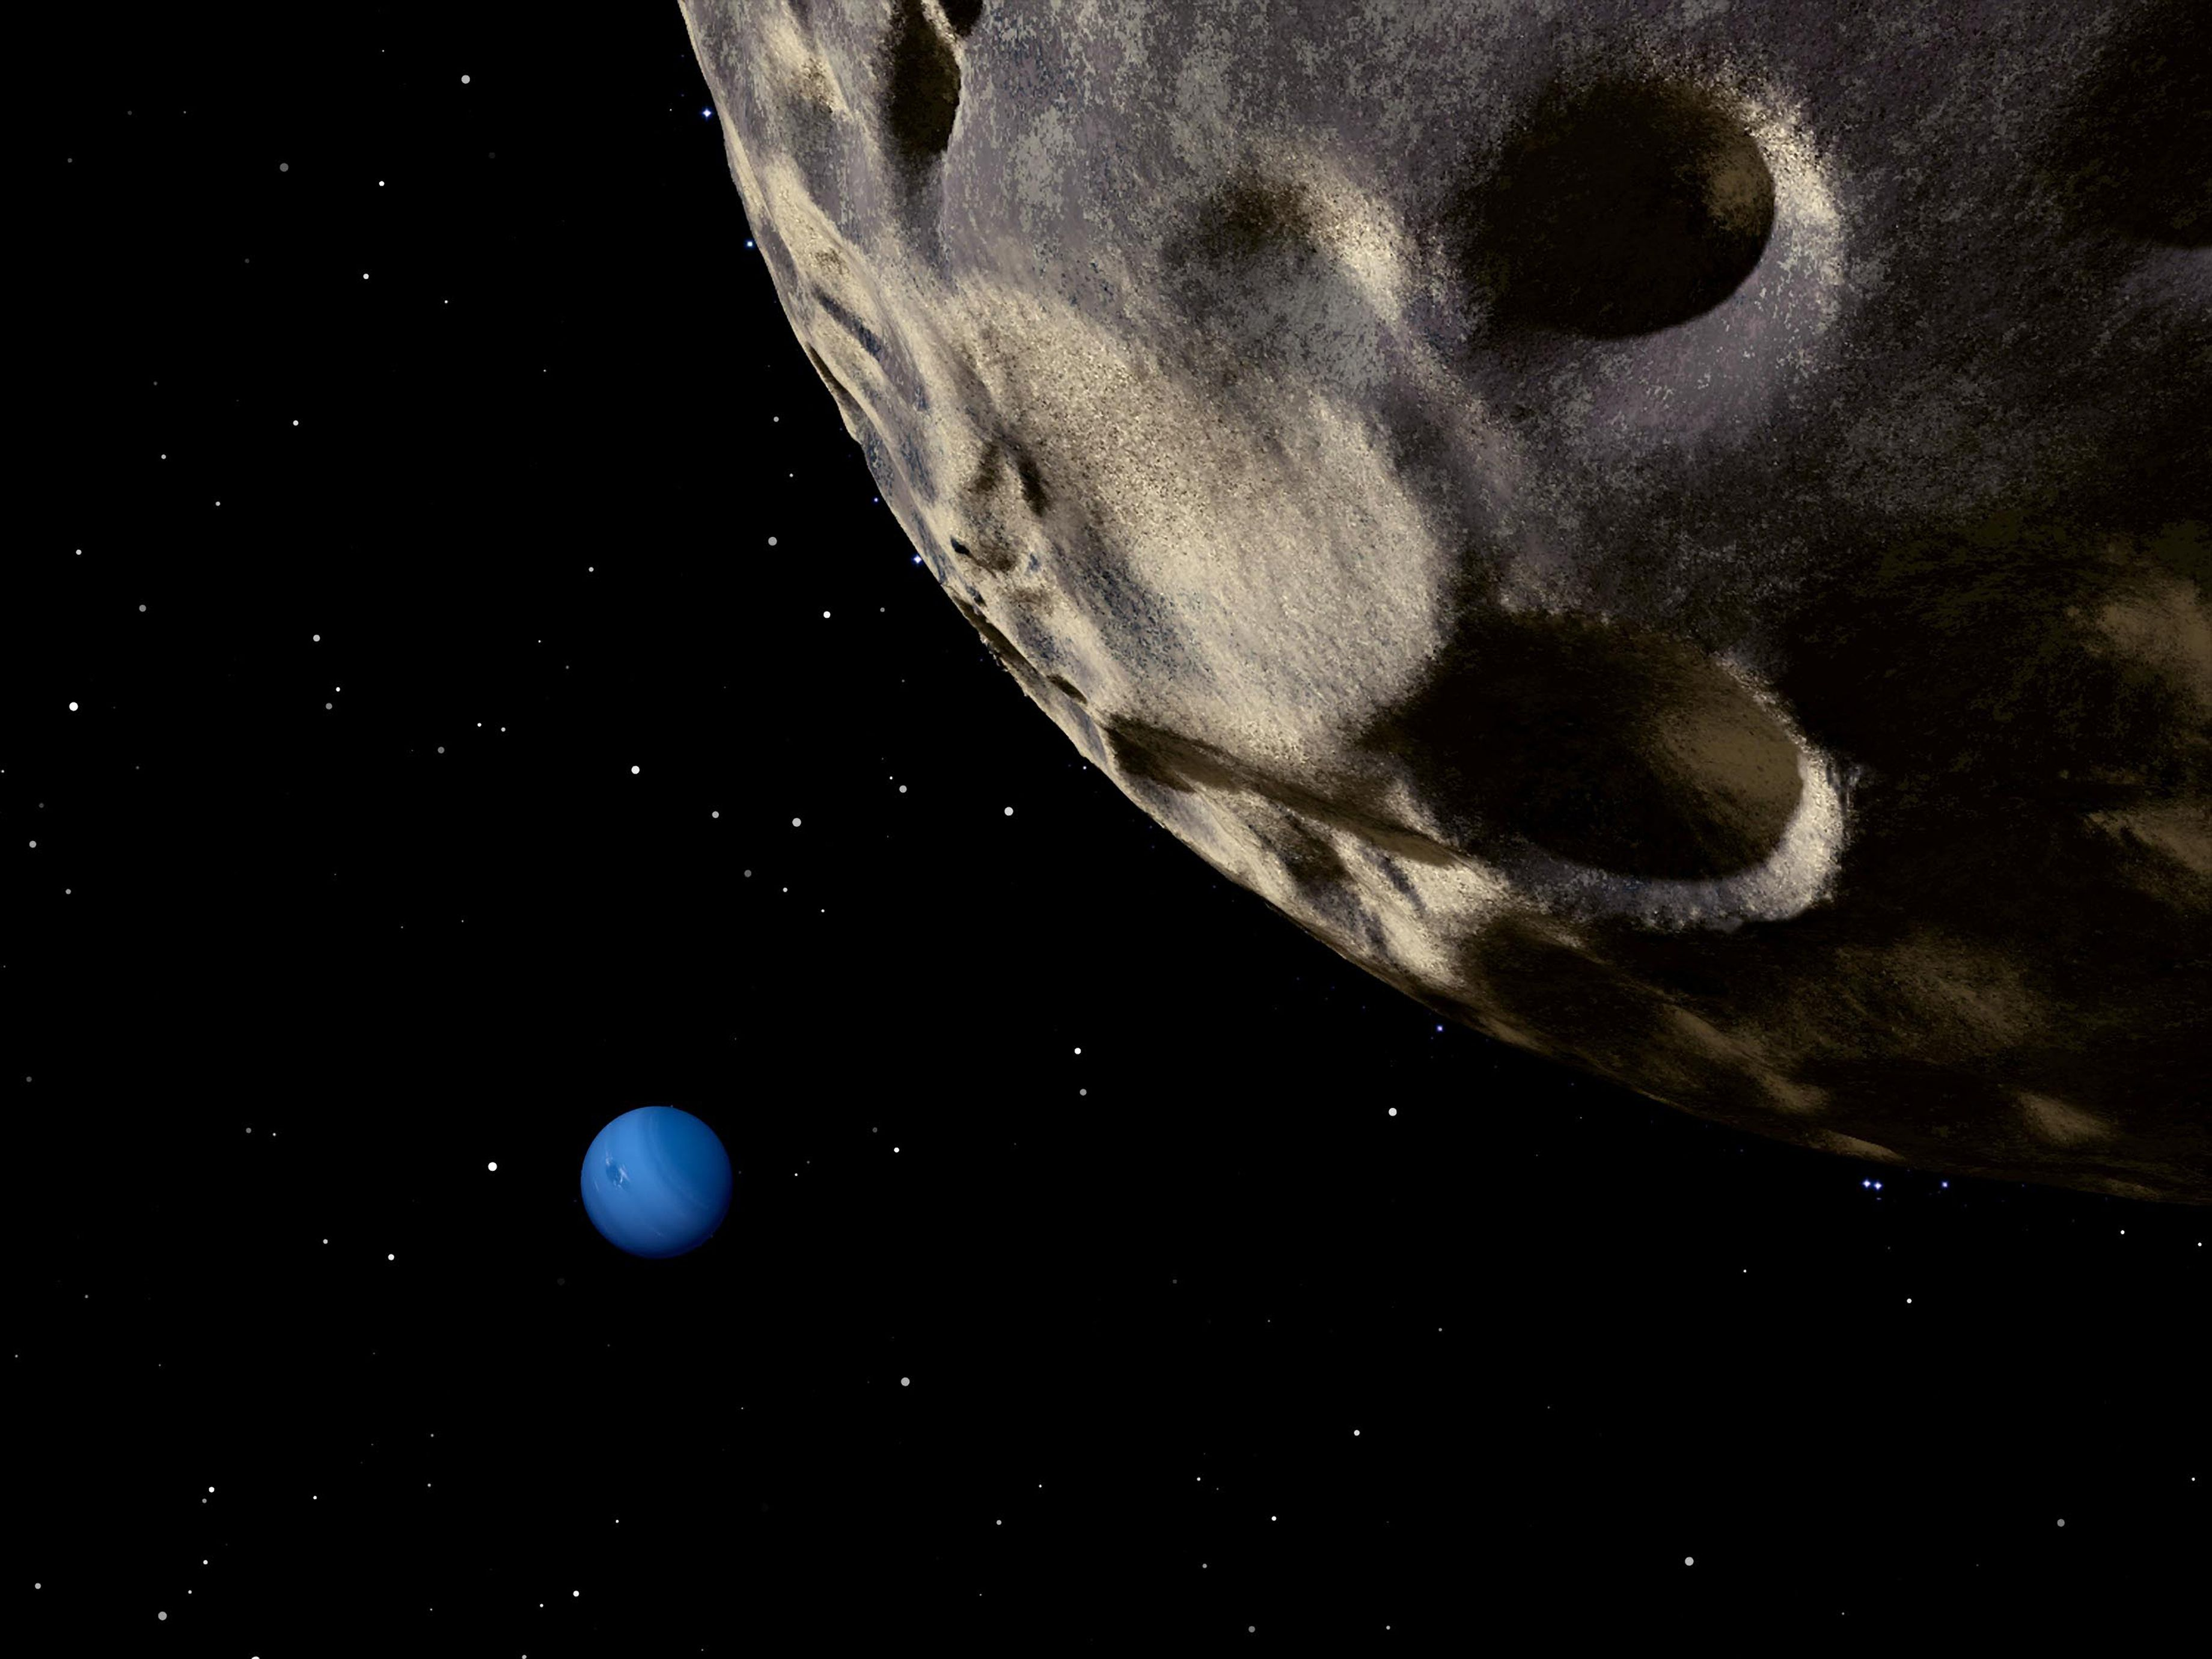 Neptune seen from its tiny, distant moon, Nereid. (Artist's conception)